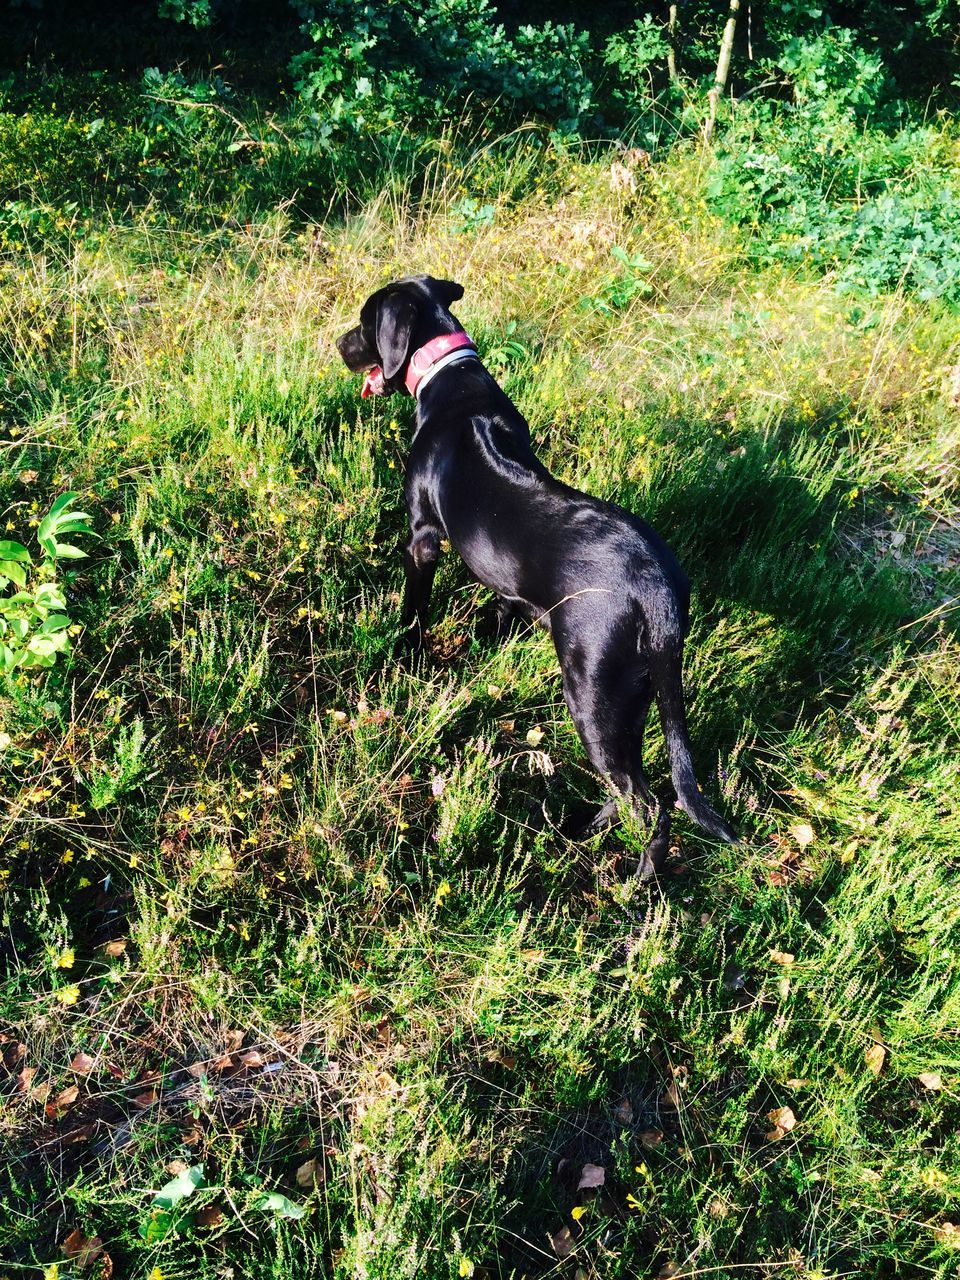 dog, pets, animal themes, domestic animals, one animal, mammal, grass, plant, black color, outdoors, black labrador, growth, nature, no people, day, full length